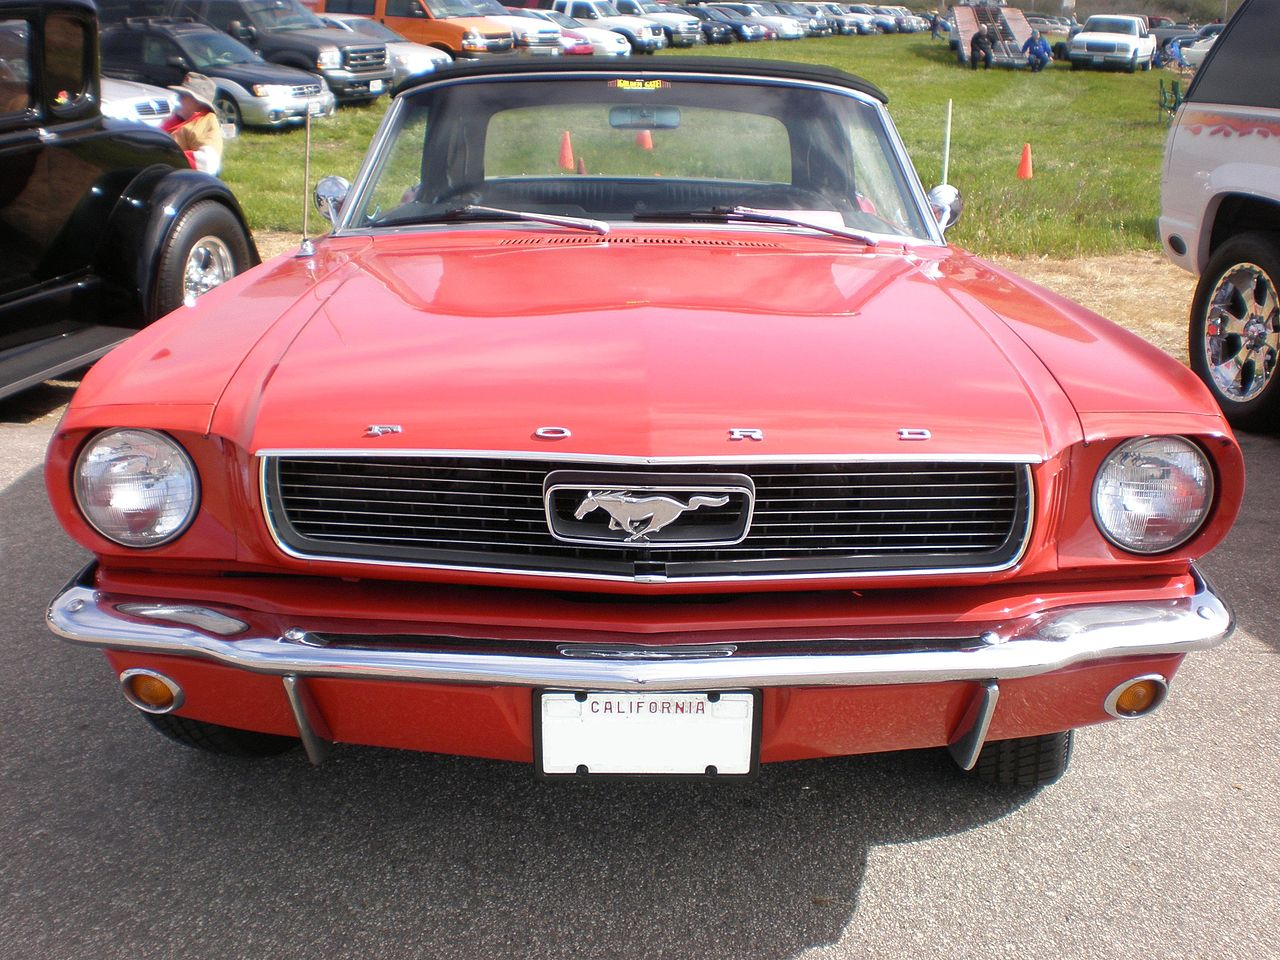 file 1966 red ford mustang convertible front jpg wikipedia. Black Bedroom Furniture Sets. Home Design Ideas